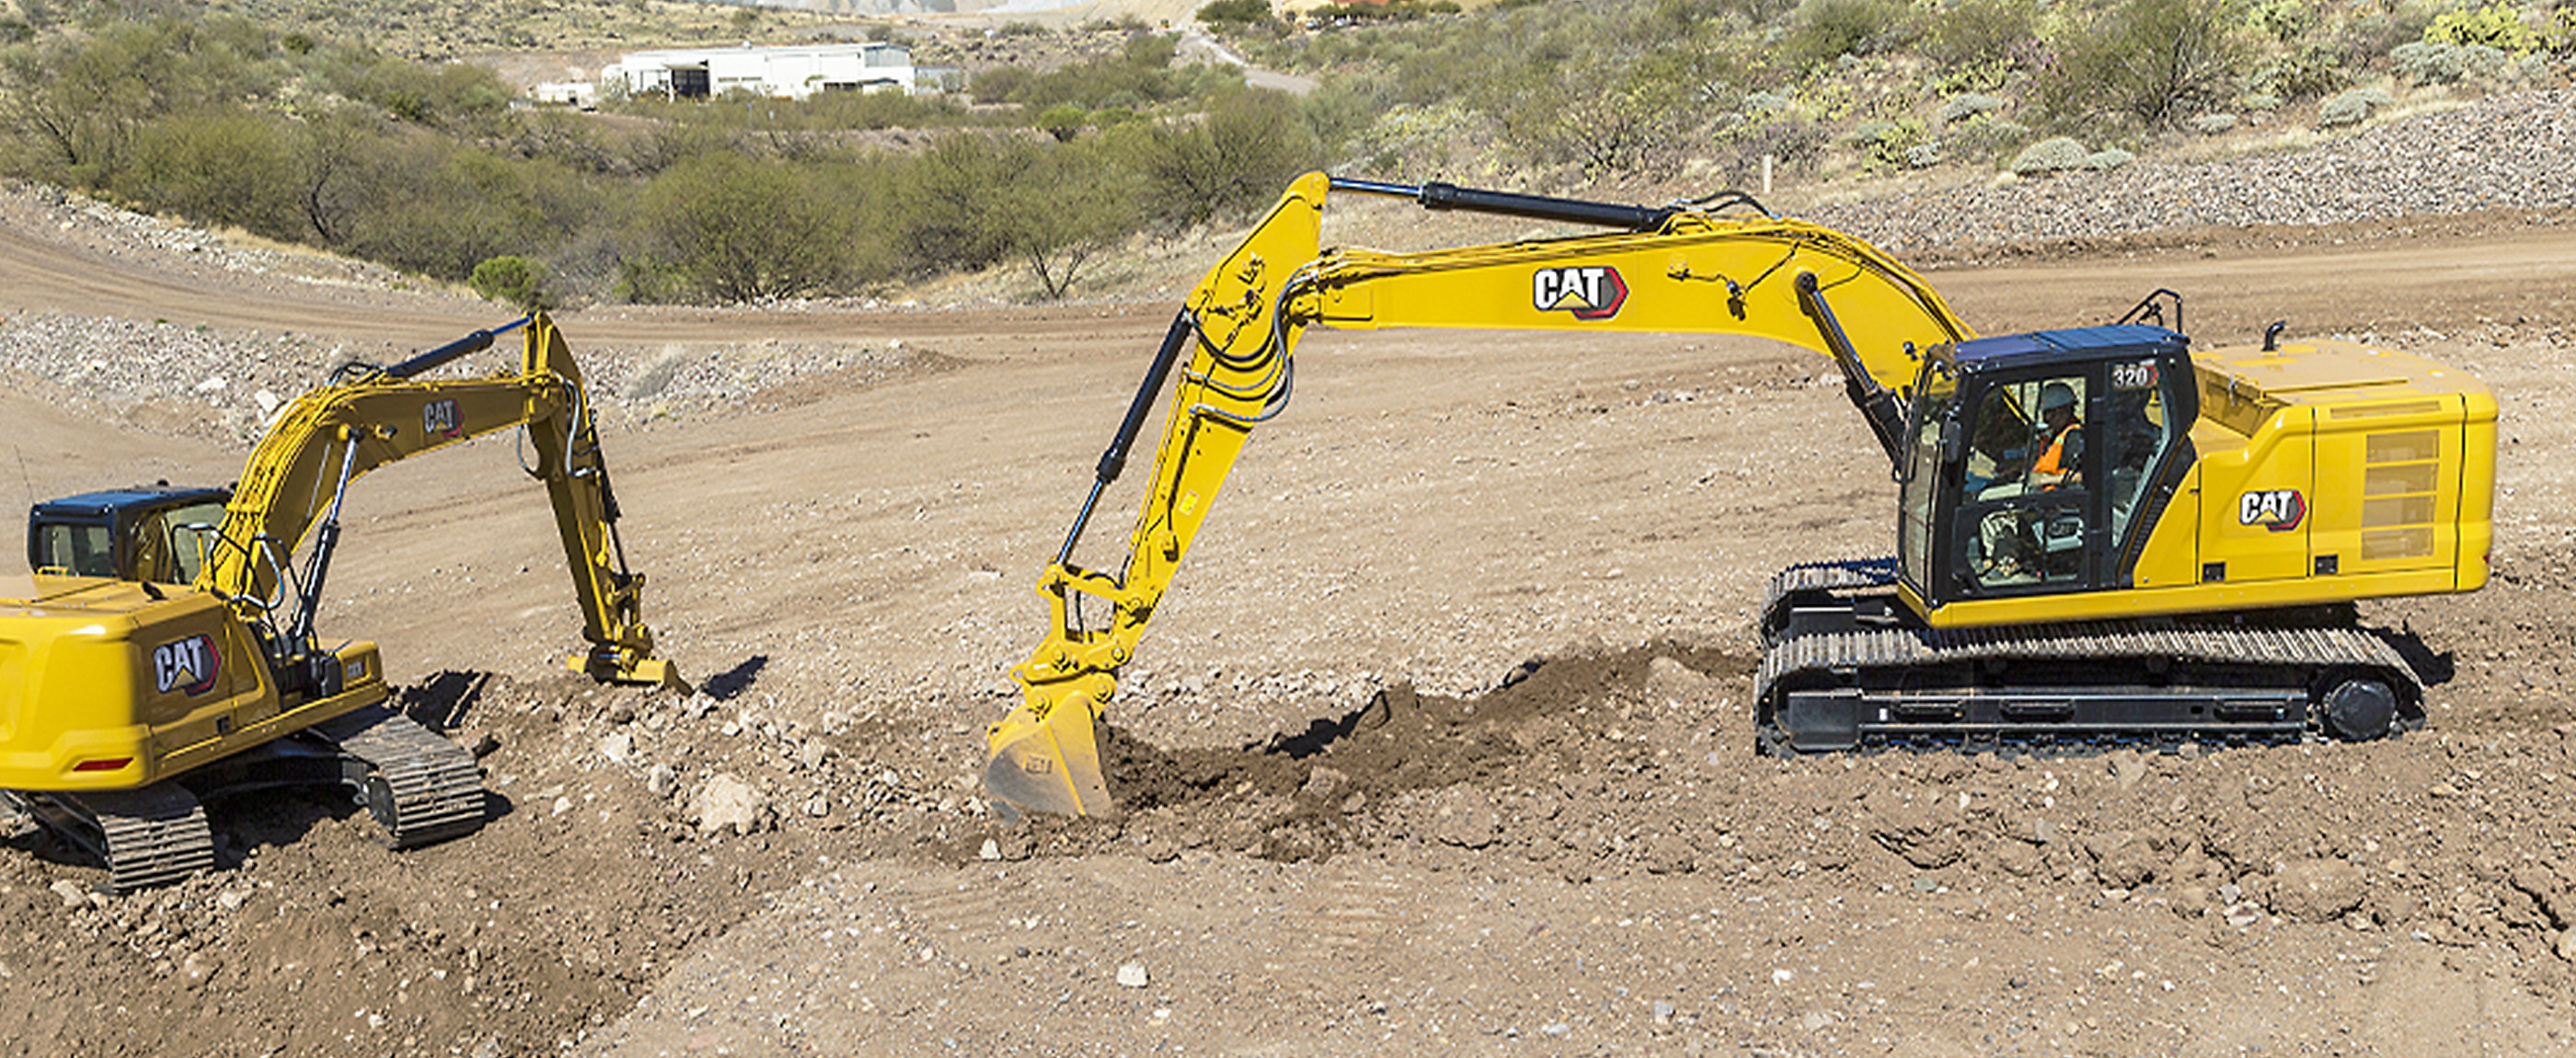 Cat machines are involved in a variety of construction projects in Japan